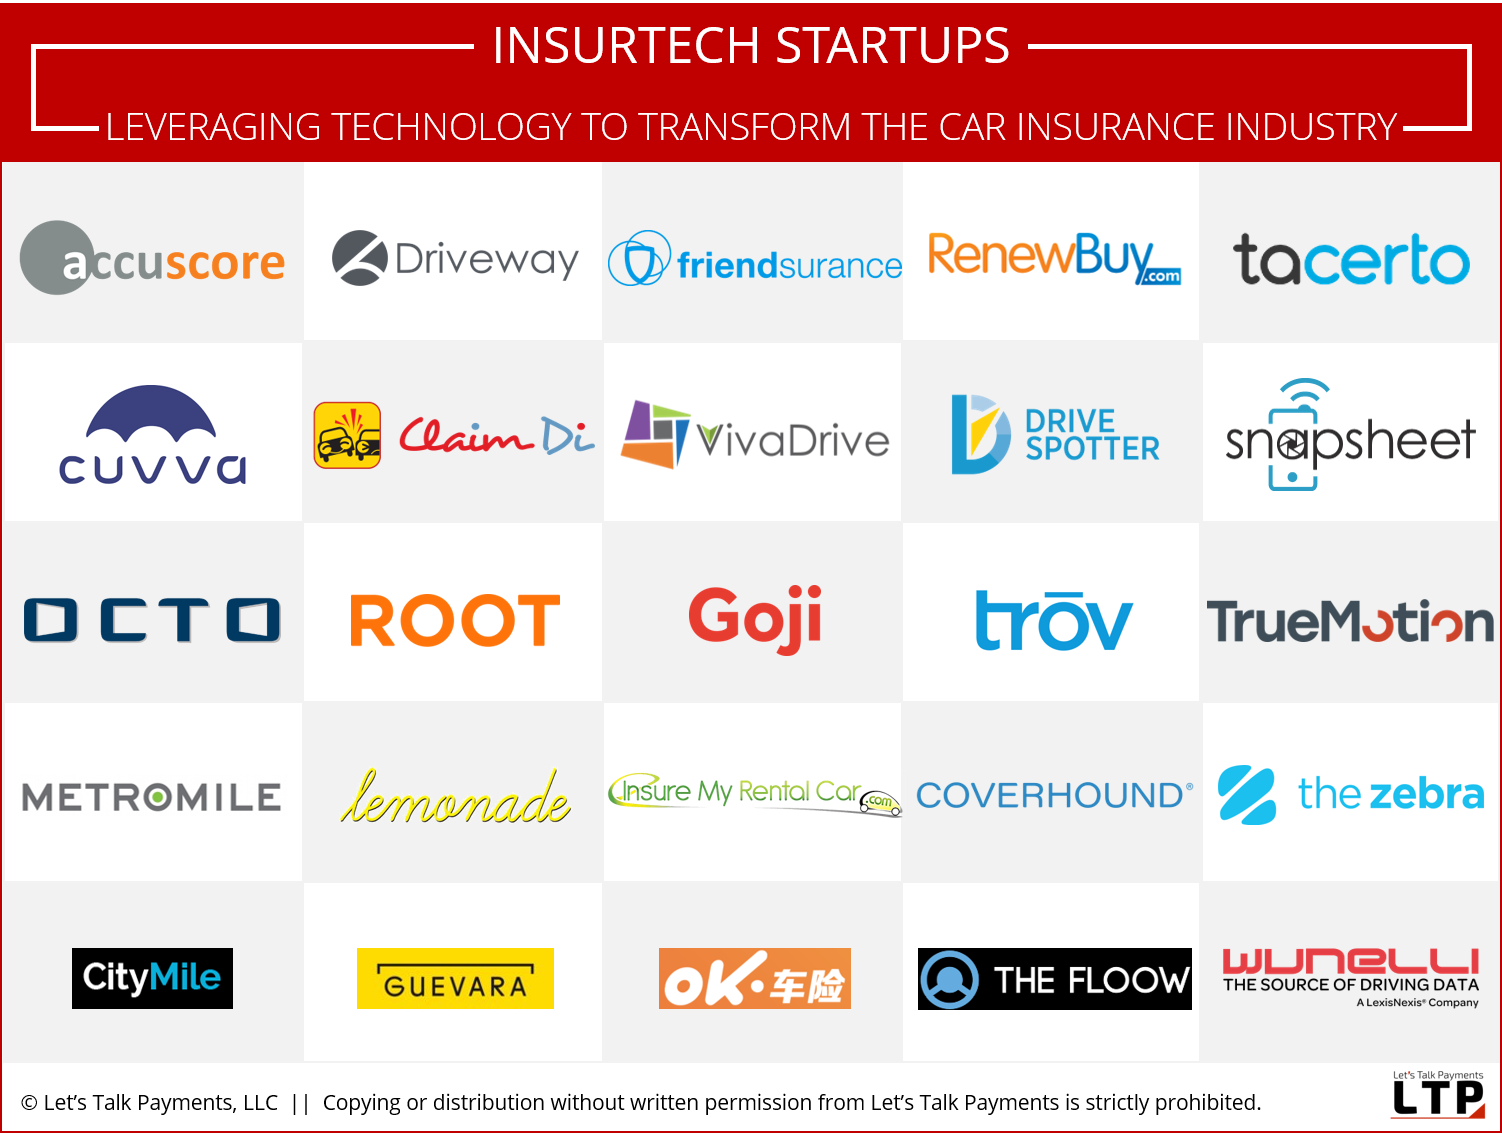 InsurTech Startups Leveraging Technology to Transform the Car Insurance Industry